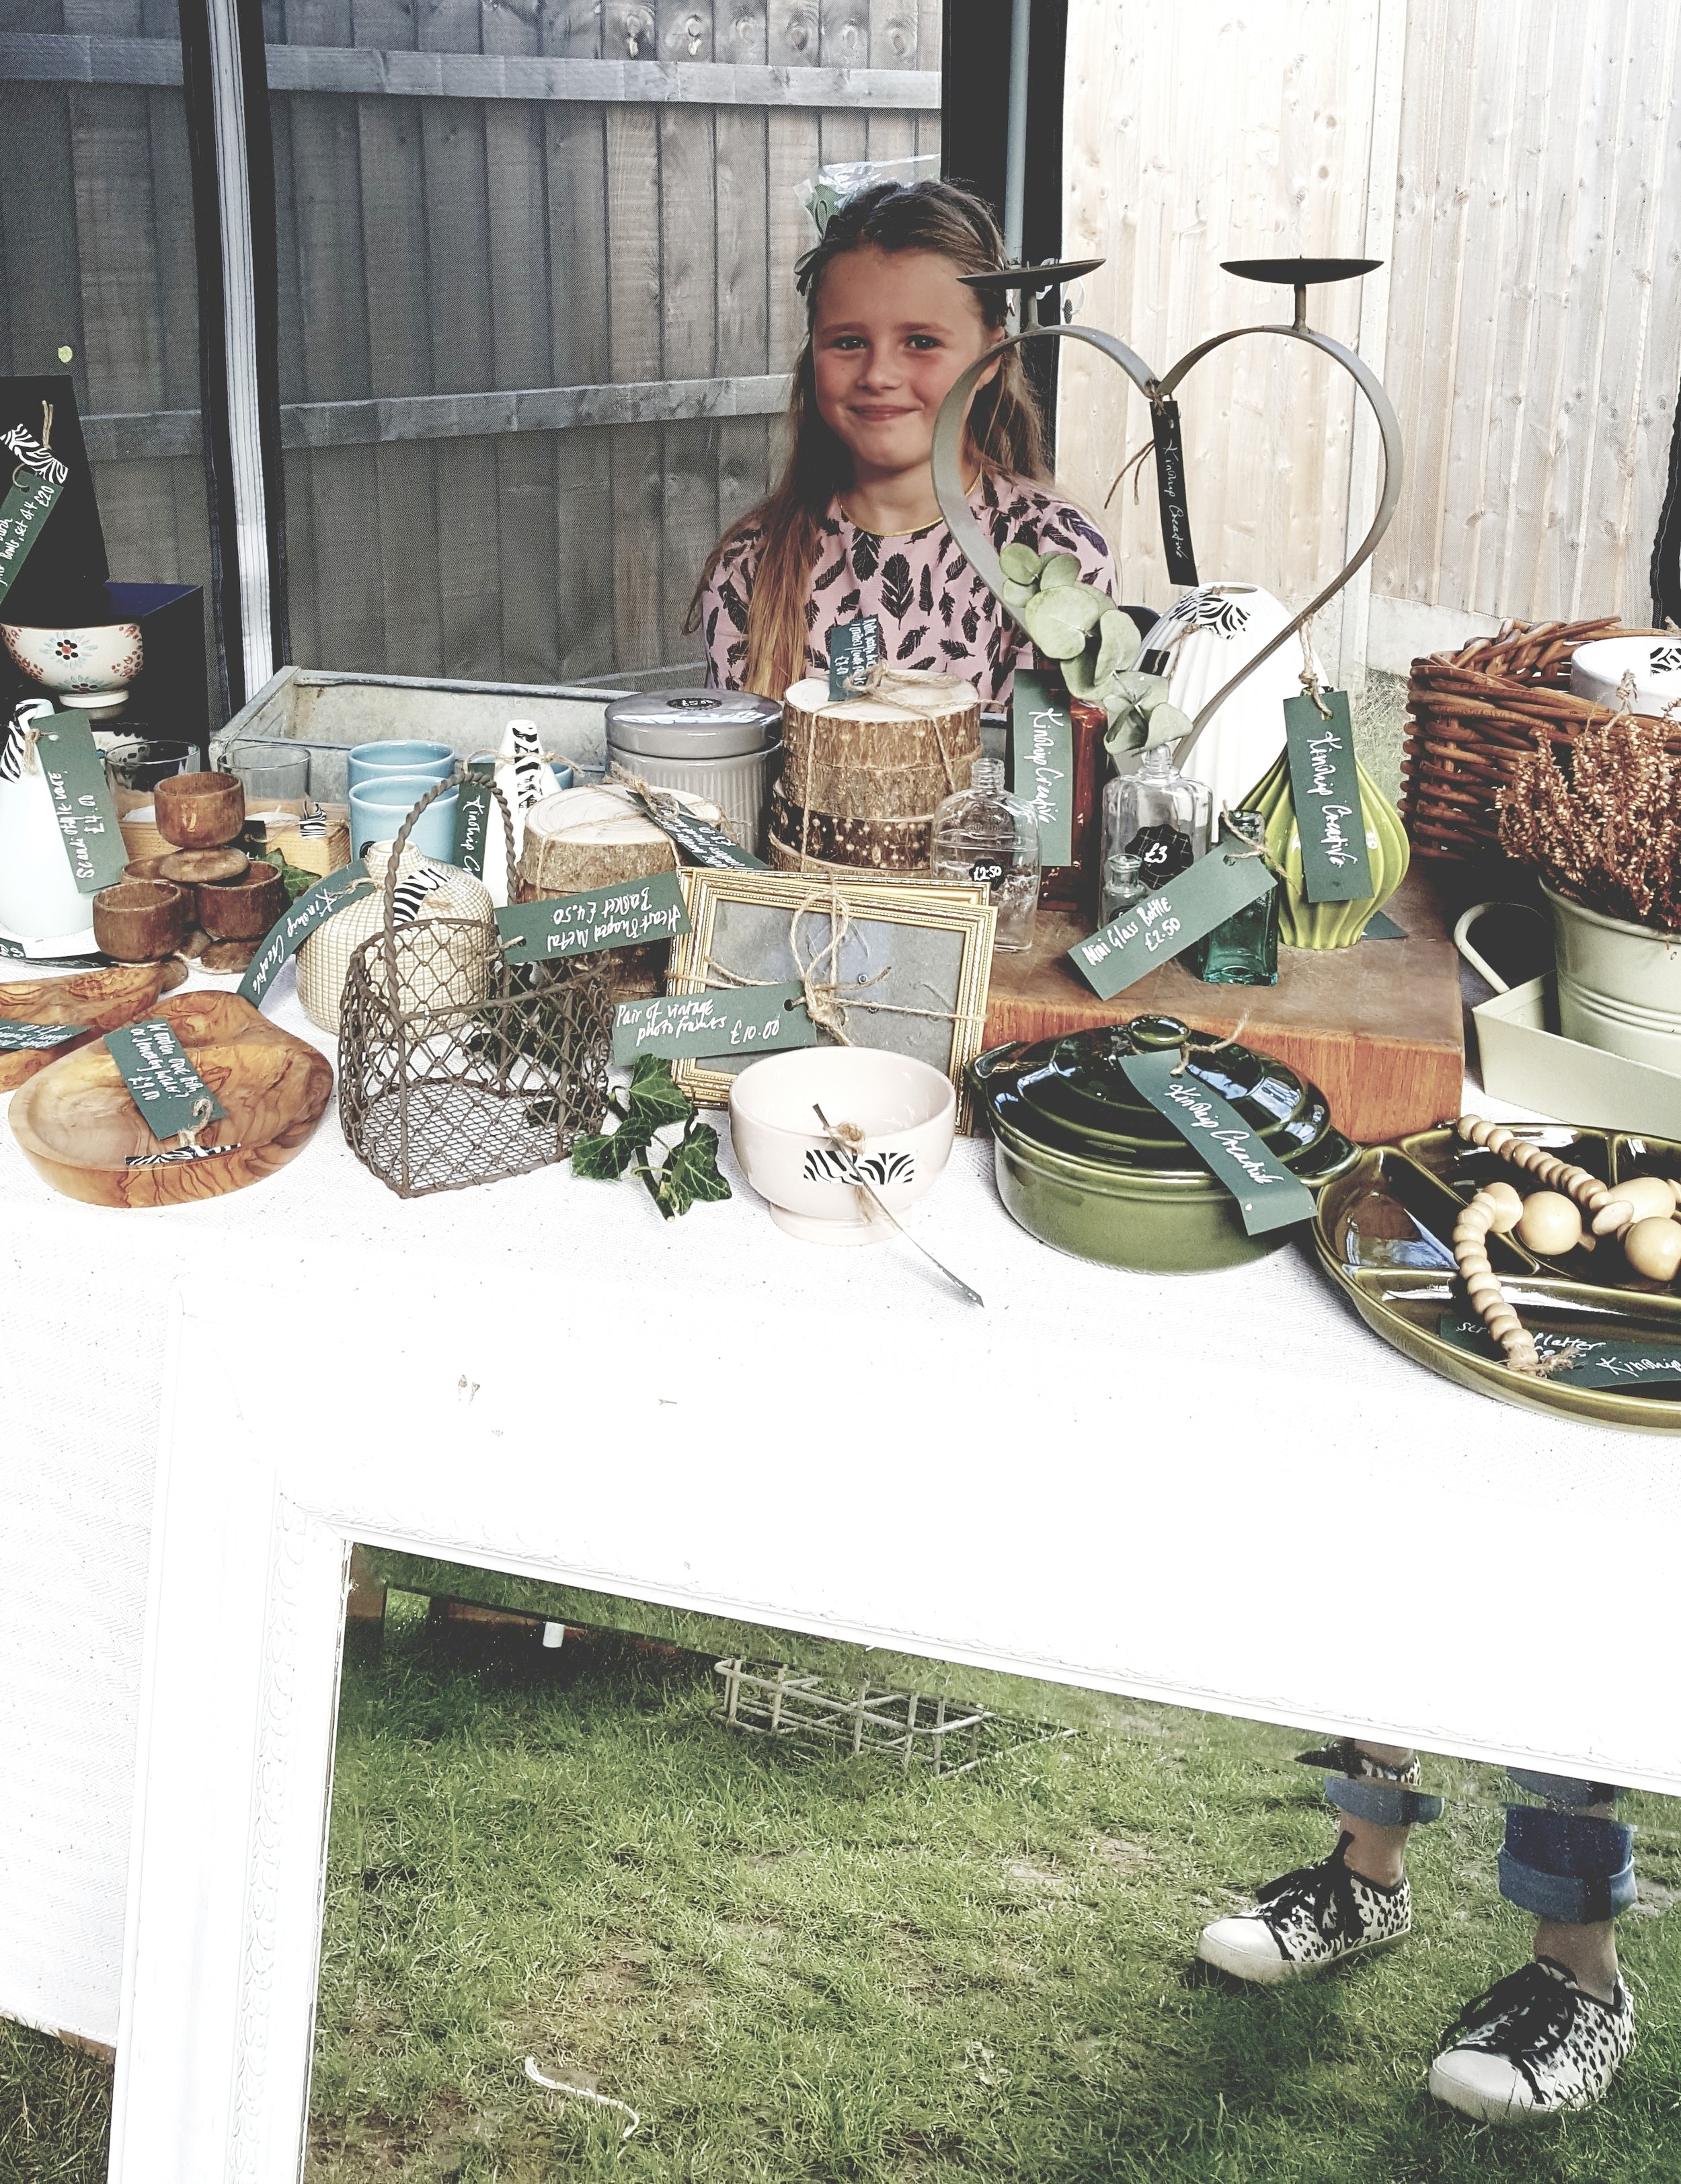 Whilst mum Kay was upstairs running our workshop daughte Bella aka Mini Kinship was downstairs running the family business behind the Kinship Creative stall.